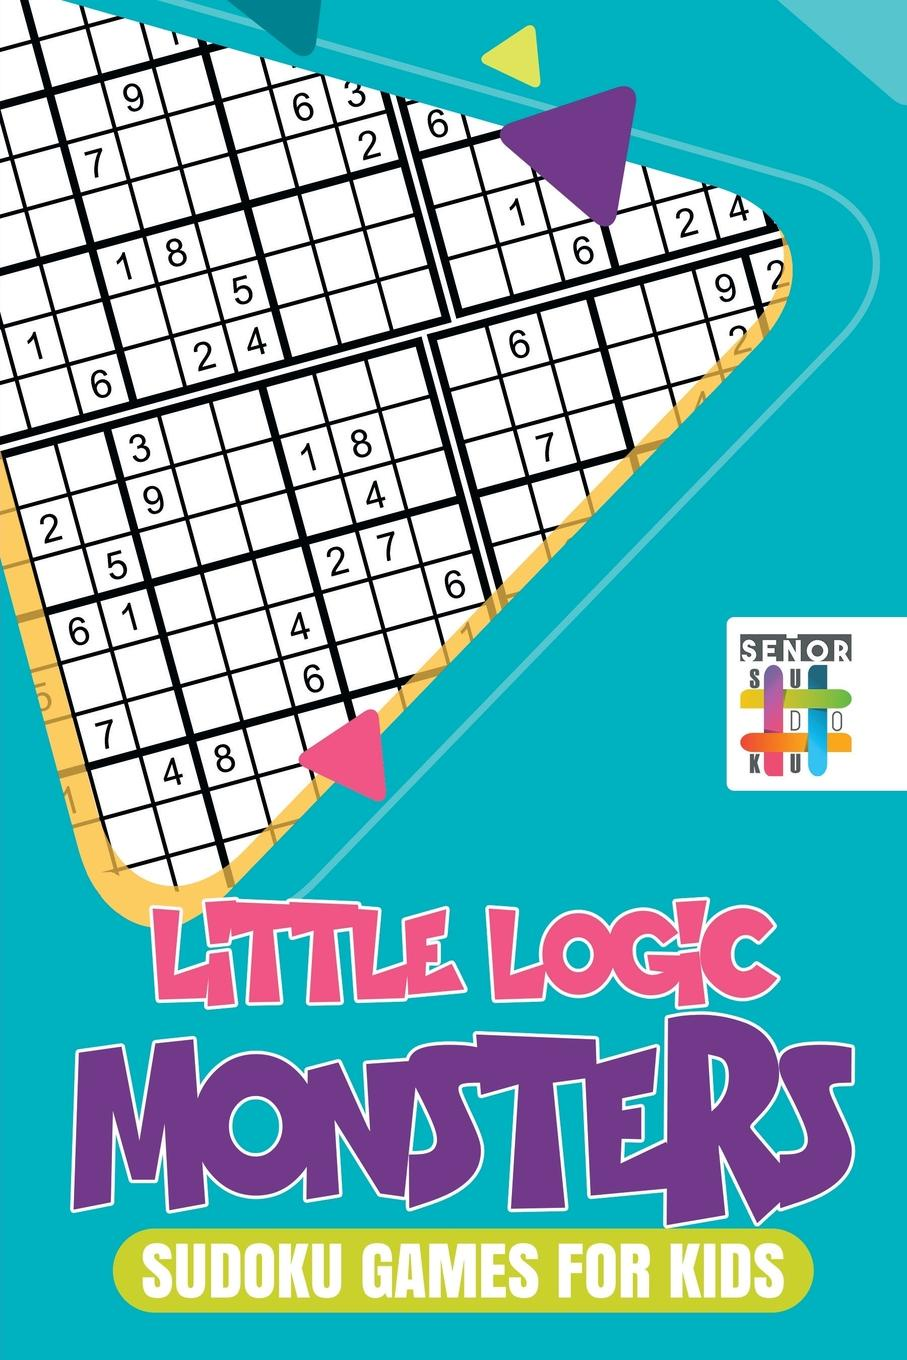 william irwin ender s game and philosophy the logic gate is down Senor Sudoku Little Logic Monsters . Sudoku Games for Kids